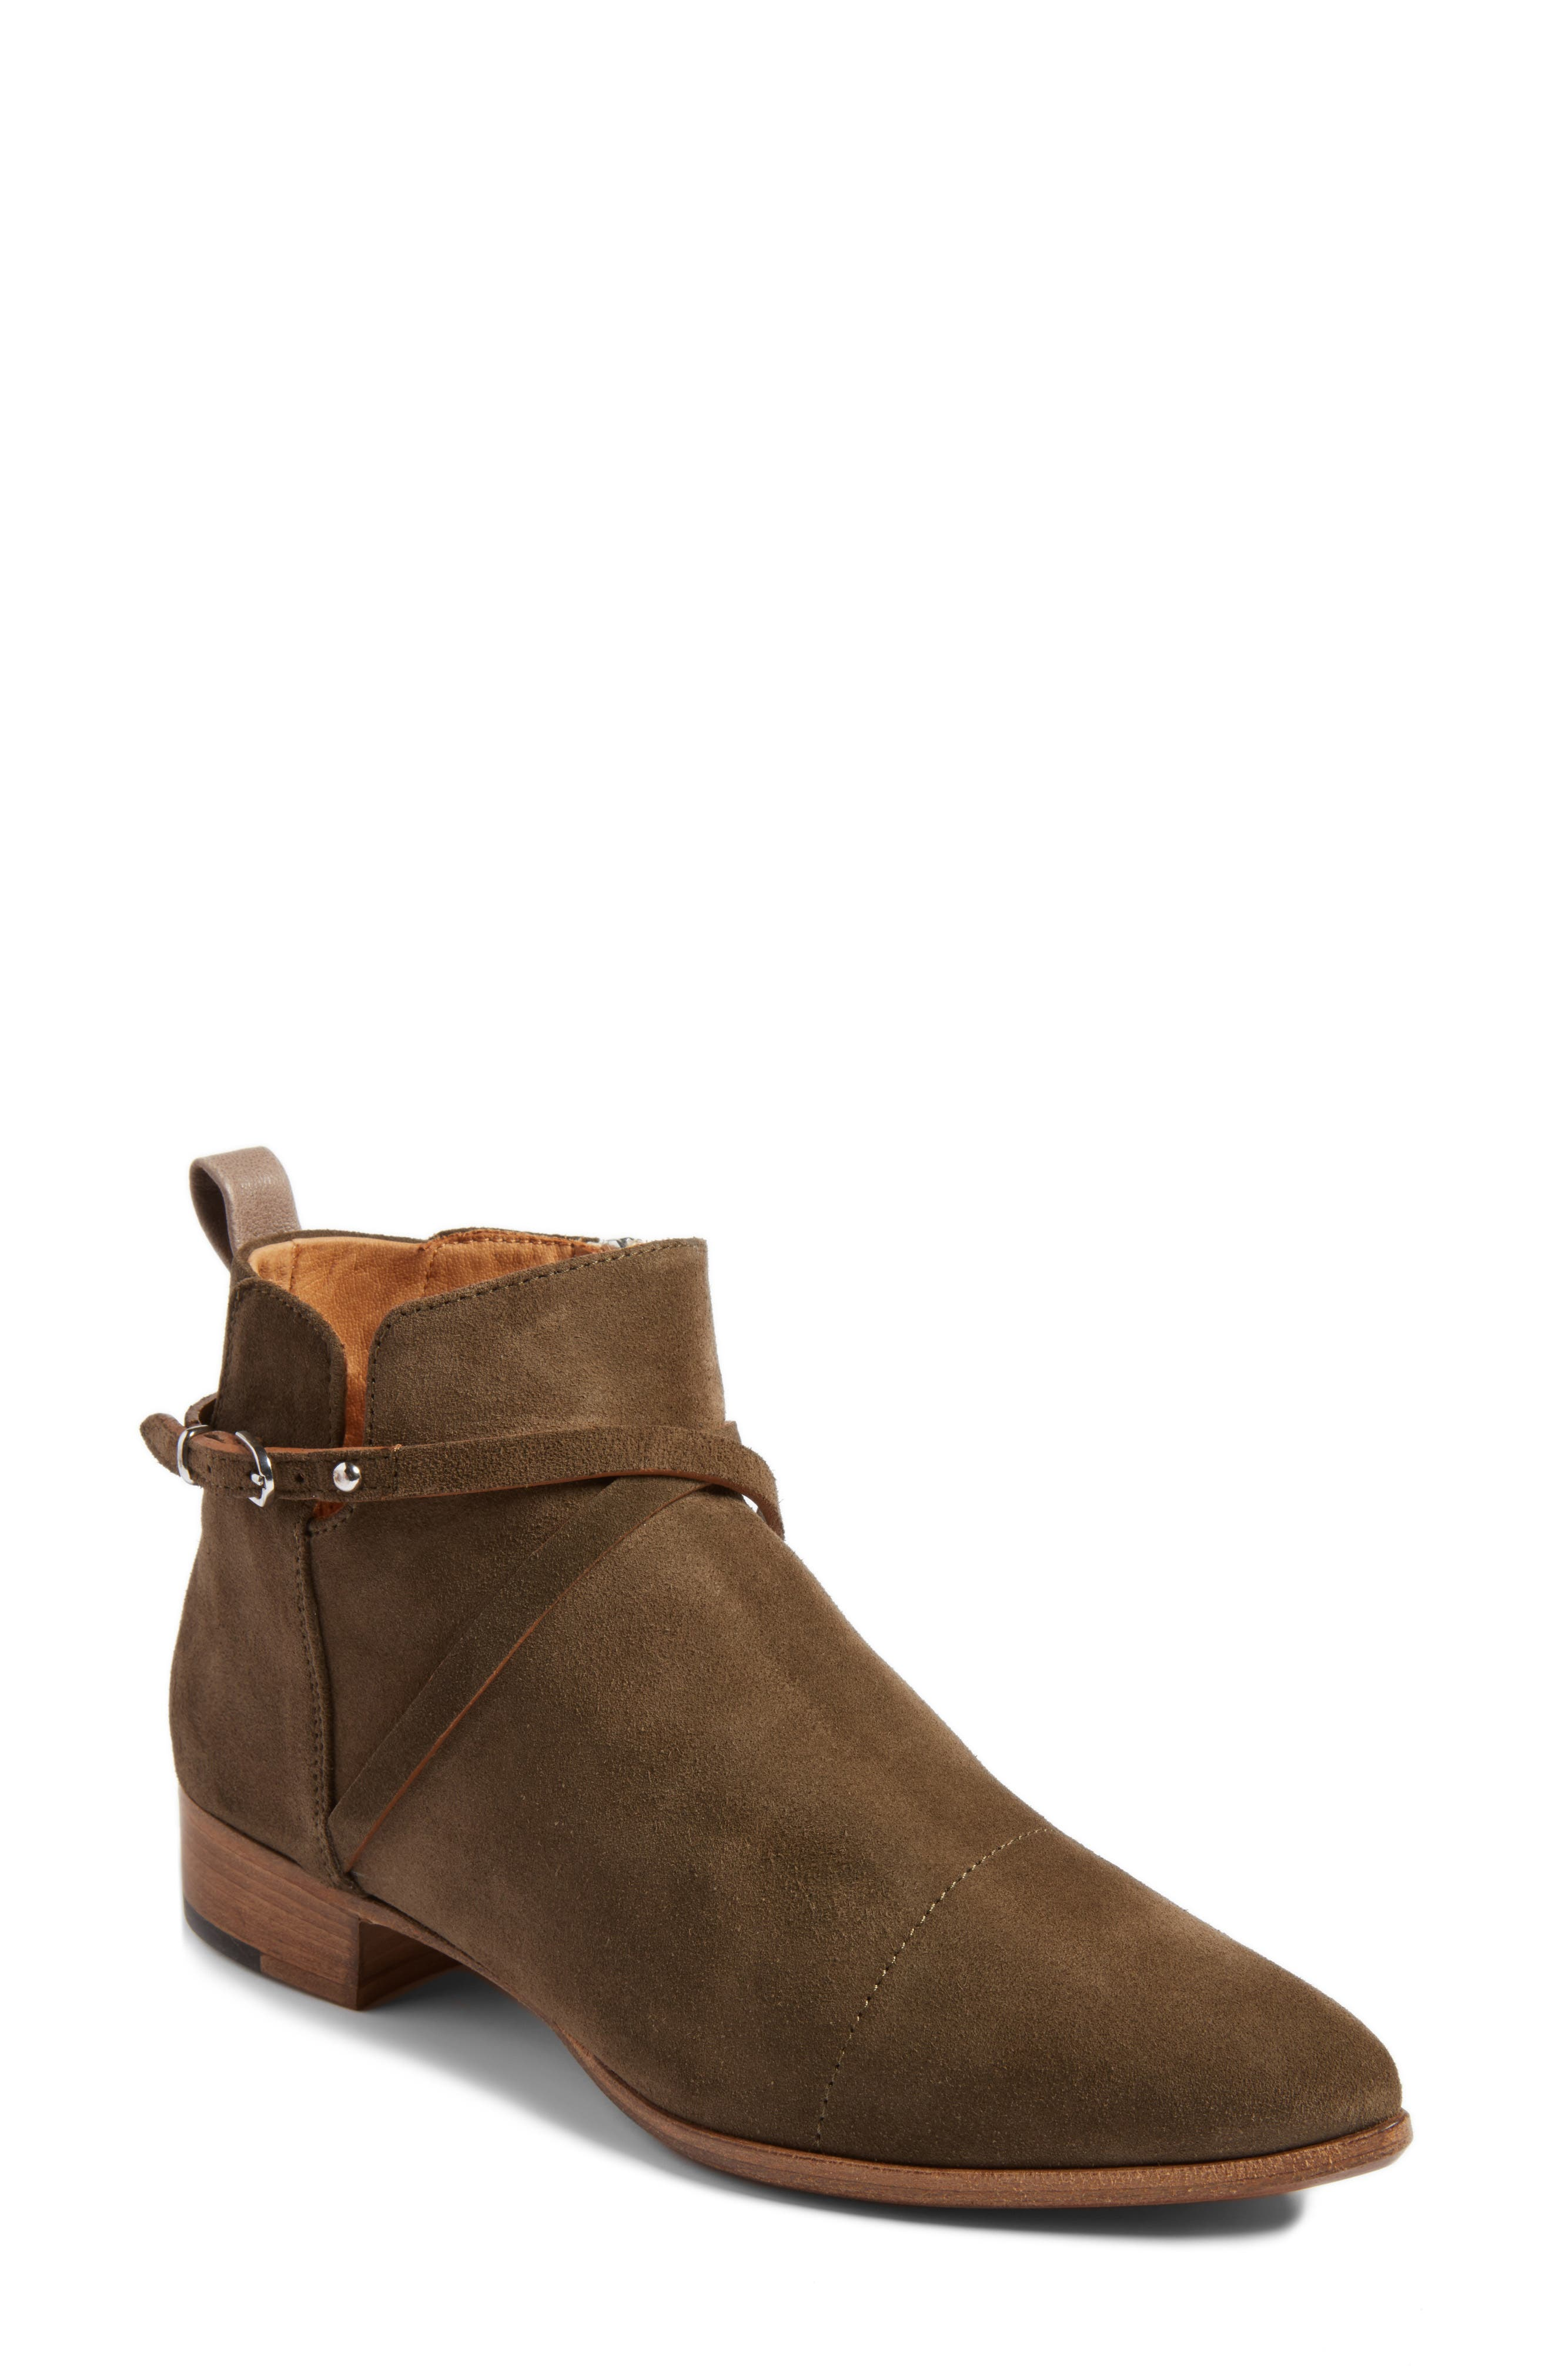 Alternate Image 1 Selected - Alberto Fermani 'Mea' Ankle Boot (Women) (Nordstrom Exclusive)